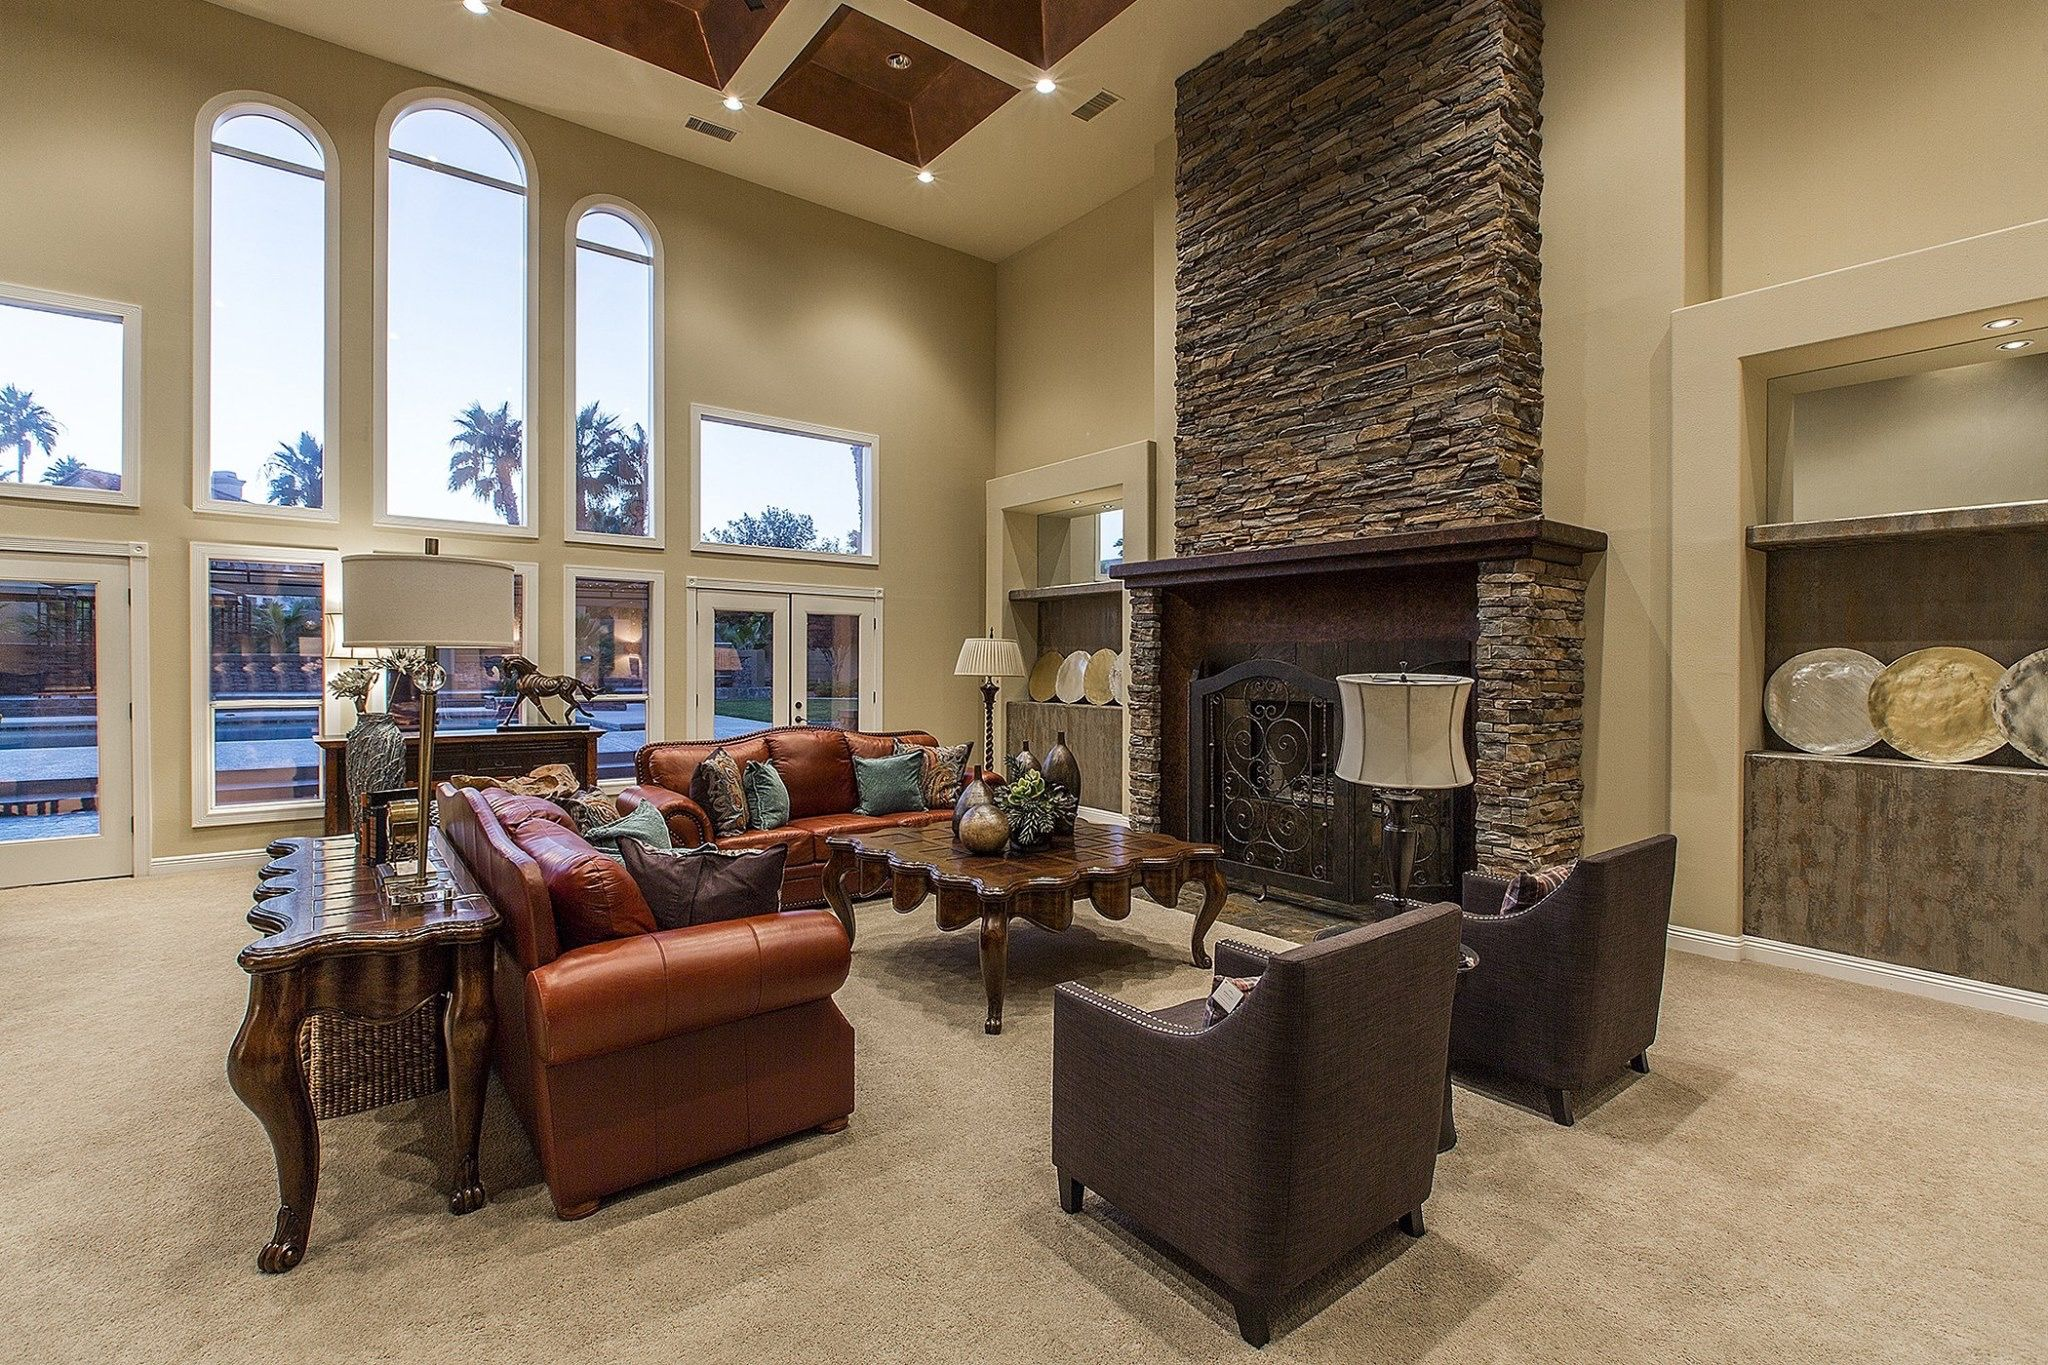 Fire Places, Single Family, Fireplaces, Mantles